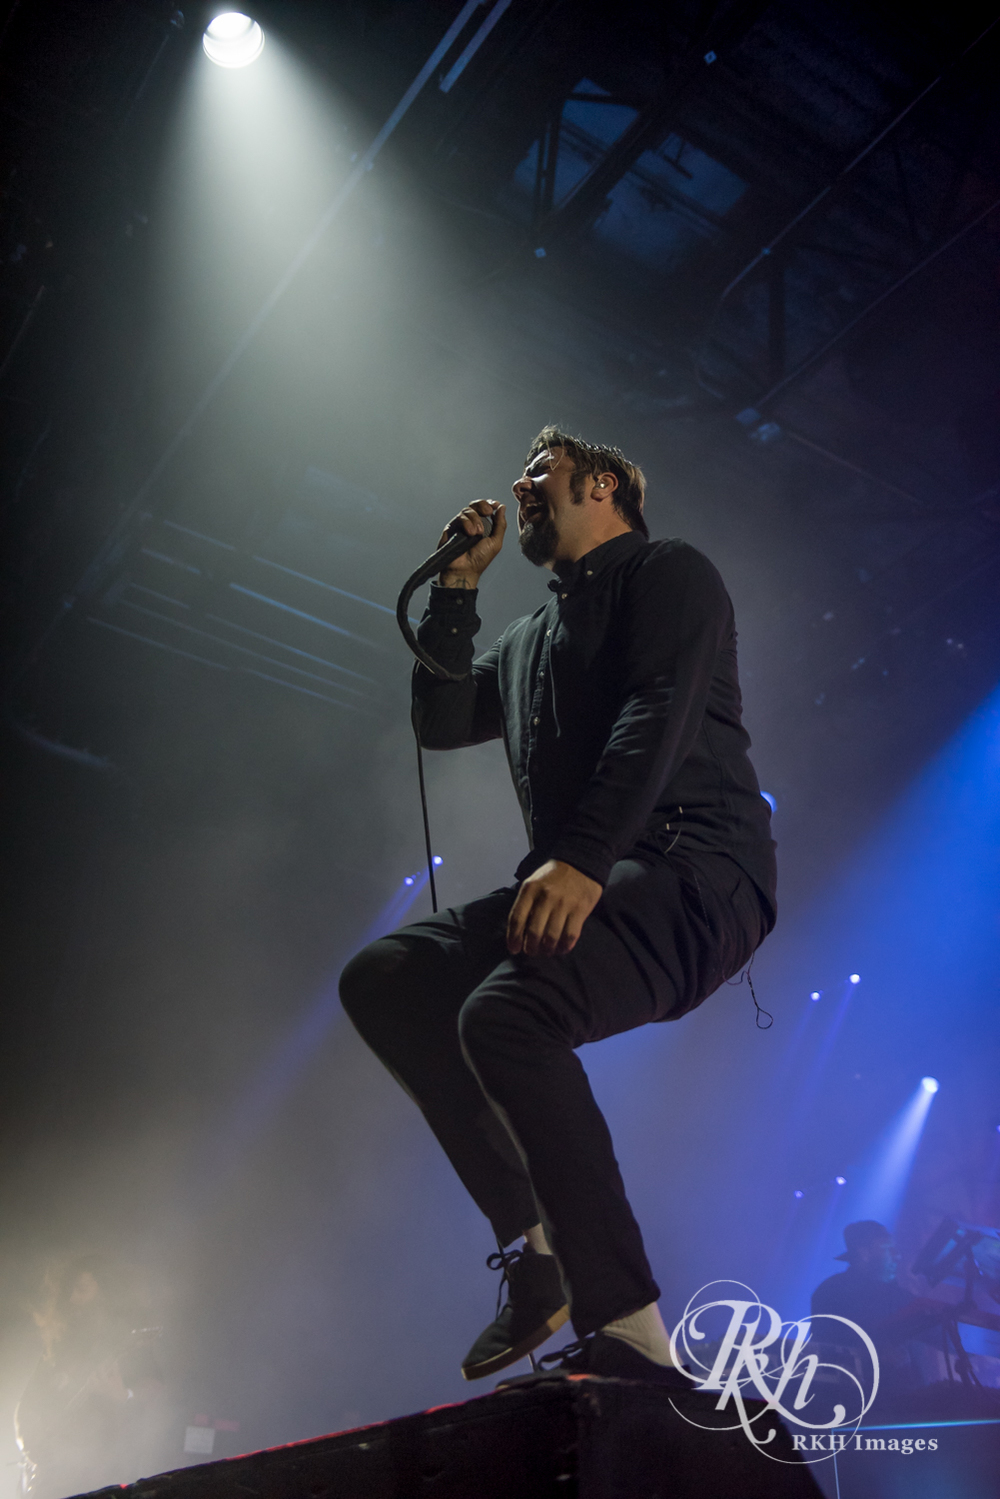 deftones rkh images (6 of 33).jpg